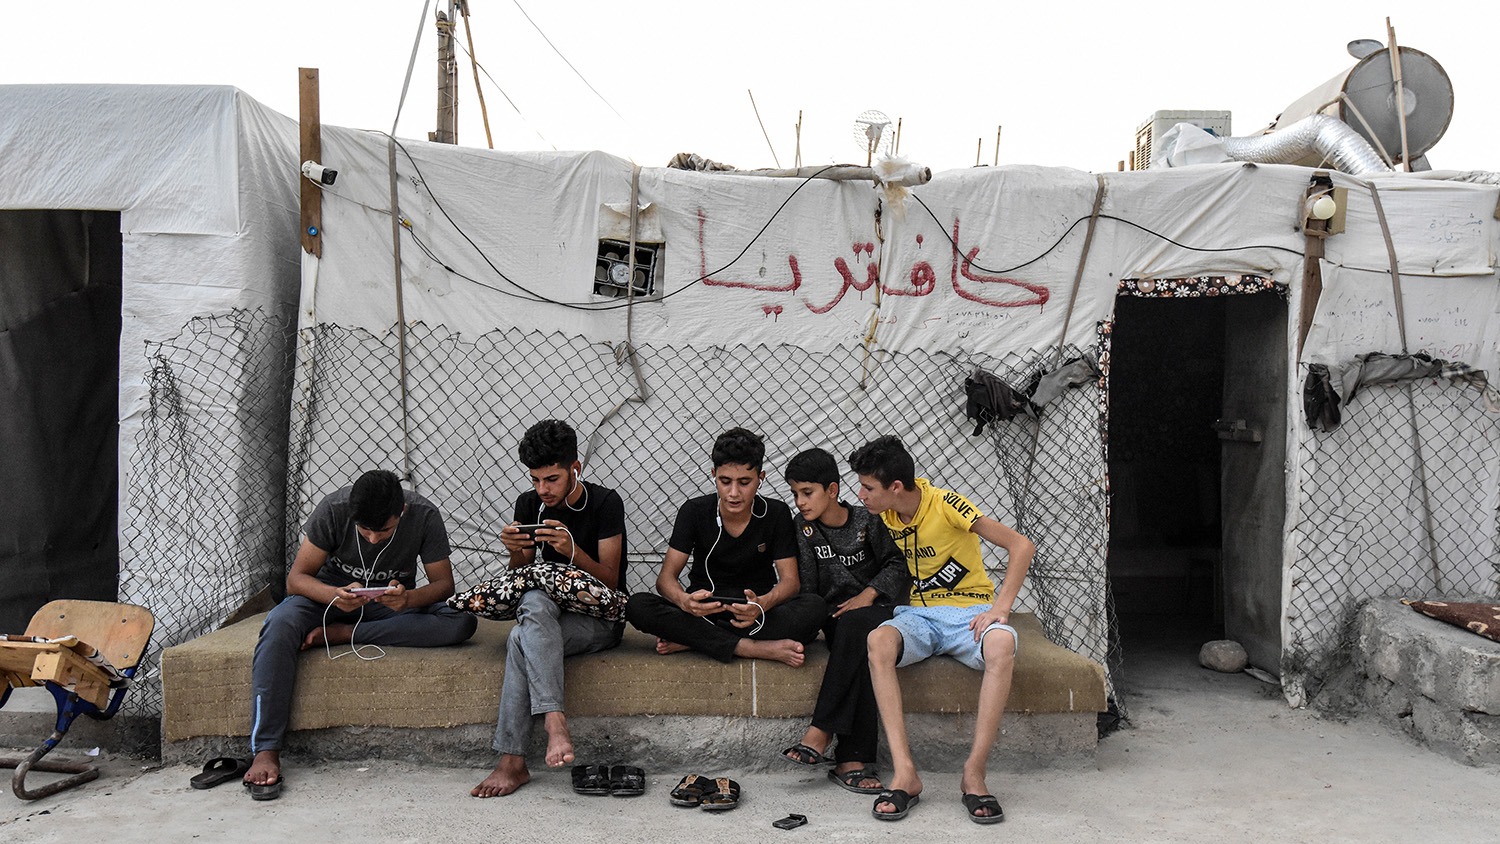 Boys look at smartphones as they sit outside a cafeteria tent at a camp for internally displaced persons in the Sharya area, in the autonomous Iraqi Kurdistan region, on Aug. 30, 2019.